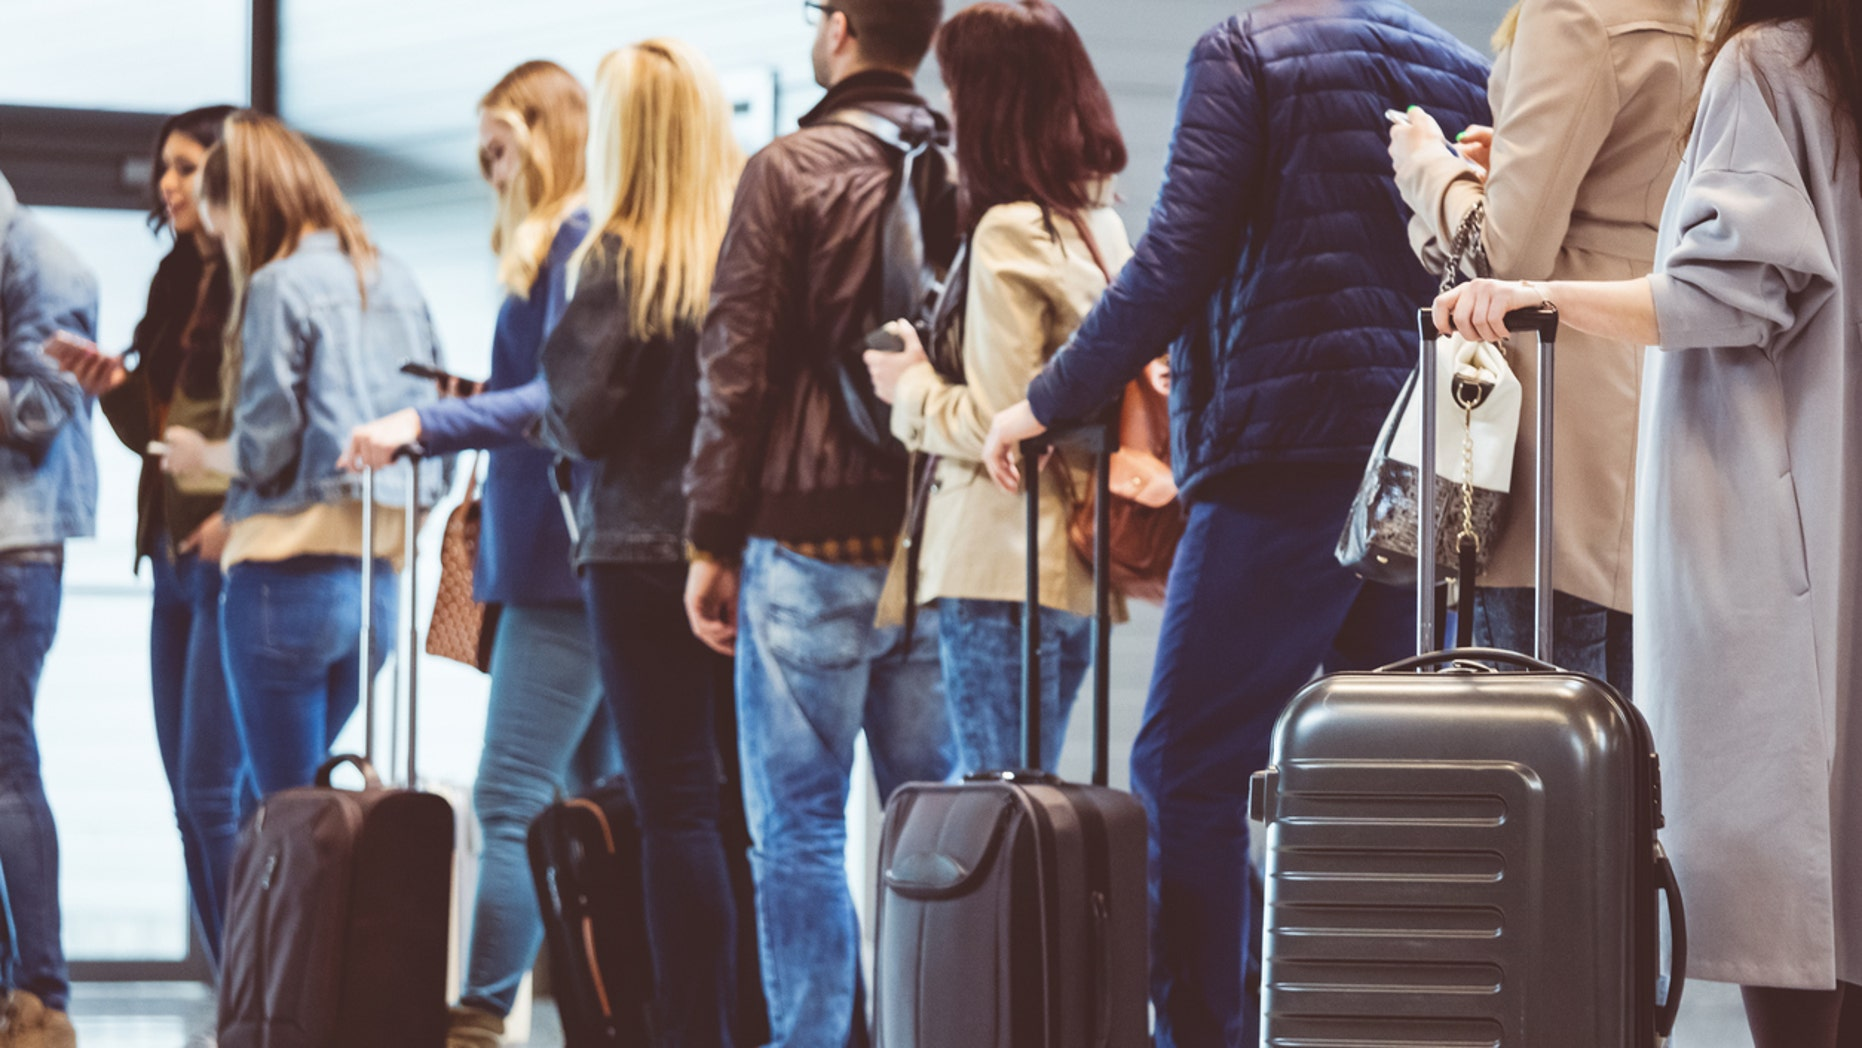 Two hours of delays happened as New Zealand's Auckland Airport on Sunday because a passenger did not go through security again after her cigarette break.